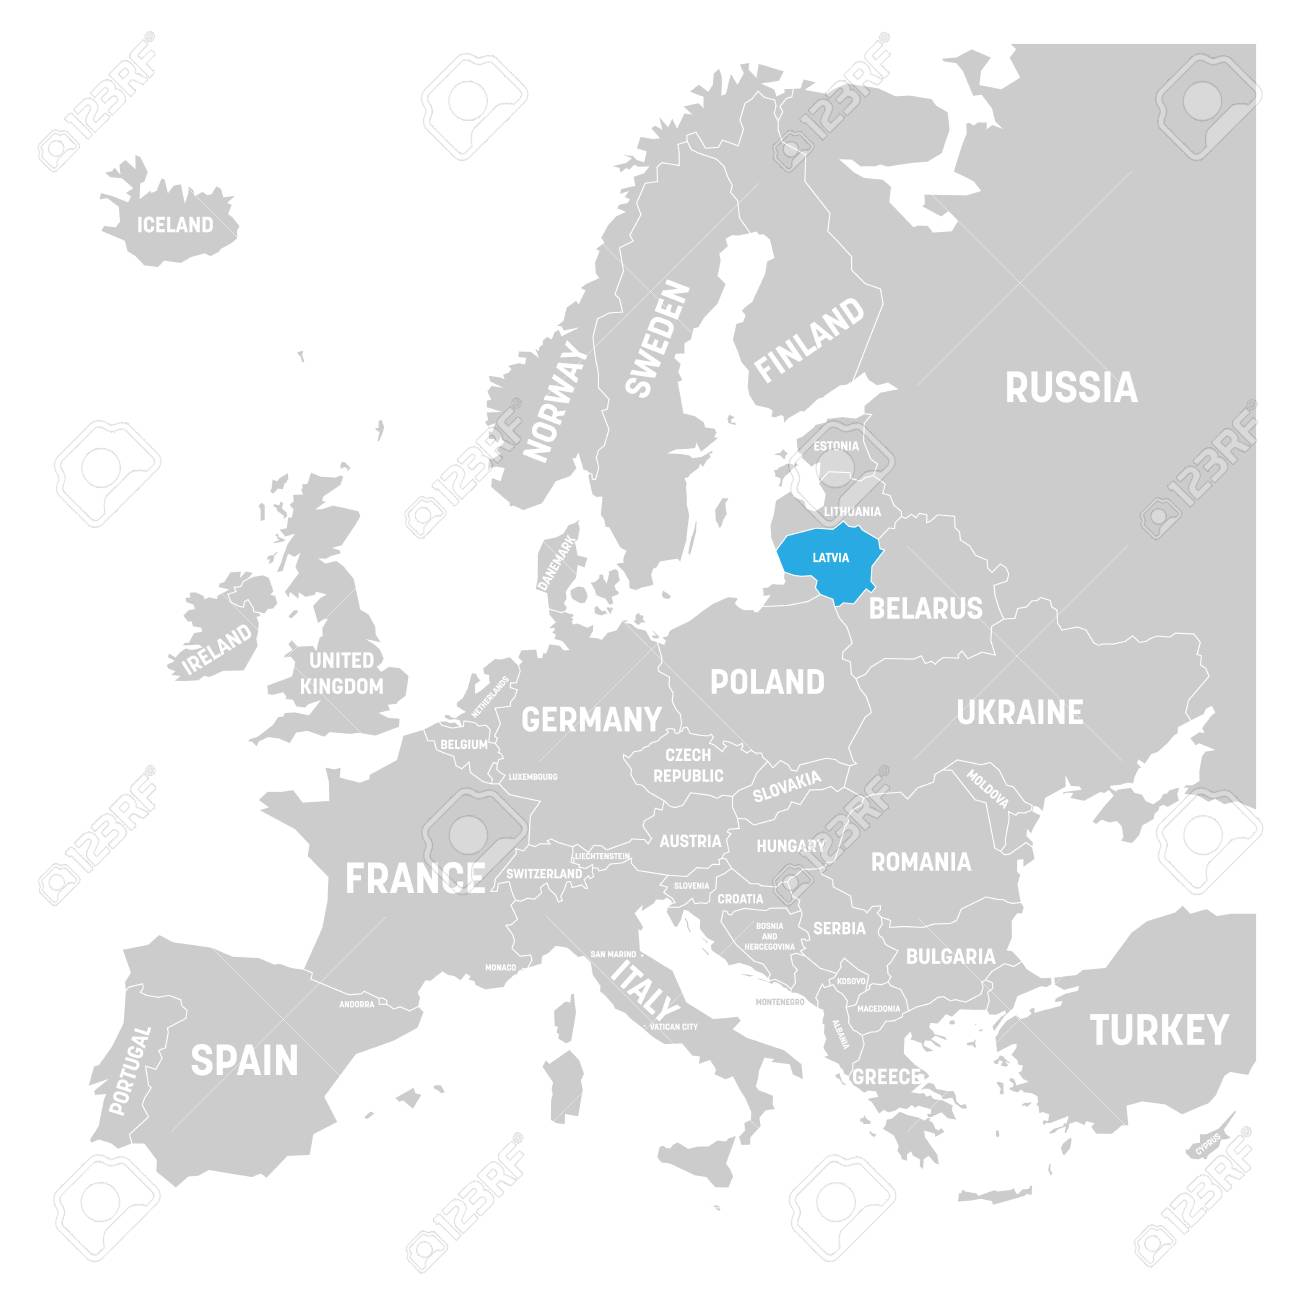 Lithuania On Europe Map.Lithuania Marked By Blue In Grey Political Map Of Europe Vector